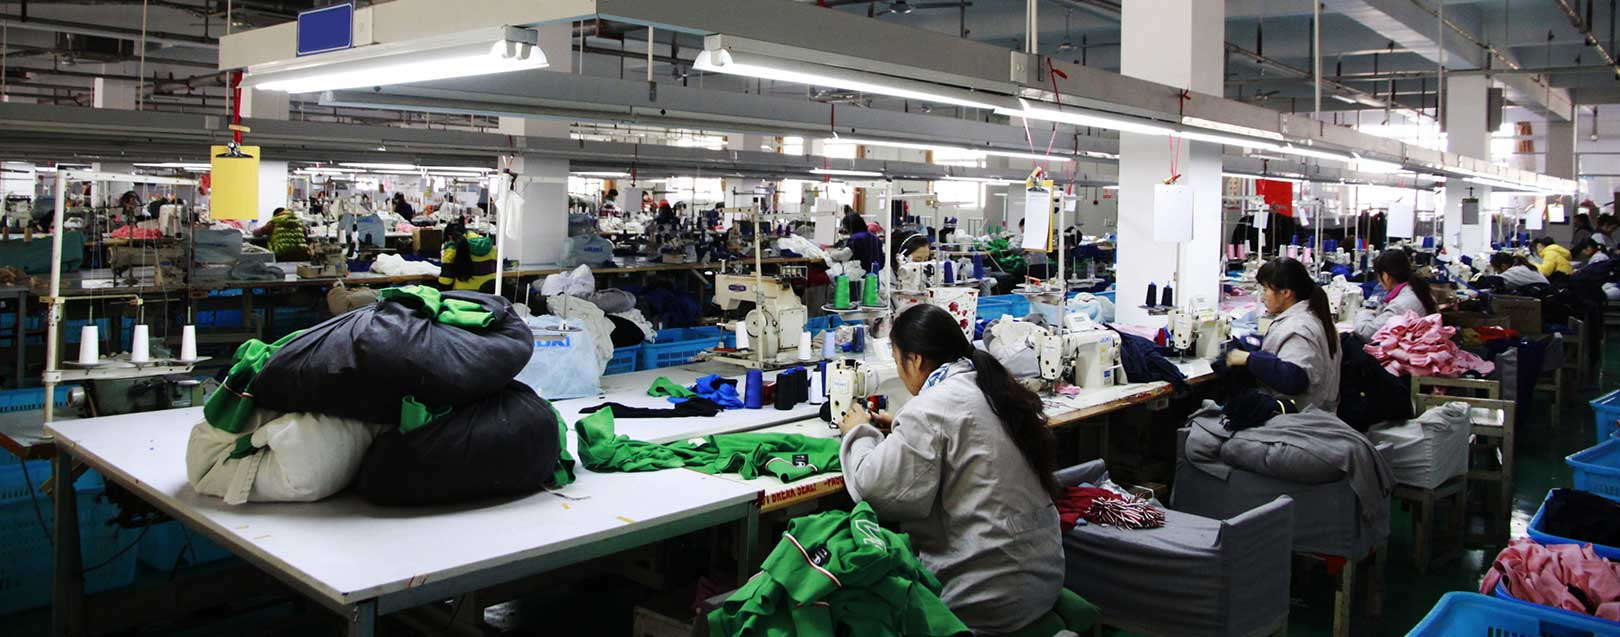 India's textile market to reach $250 bn in 2 years: ASSOCHAM study